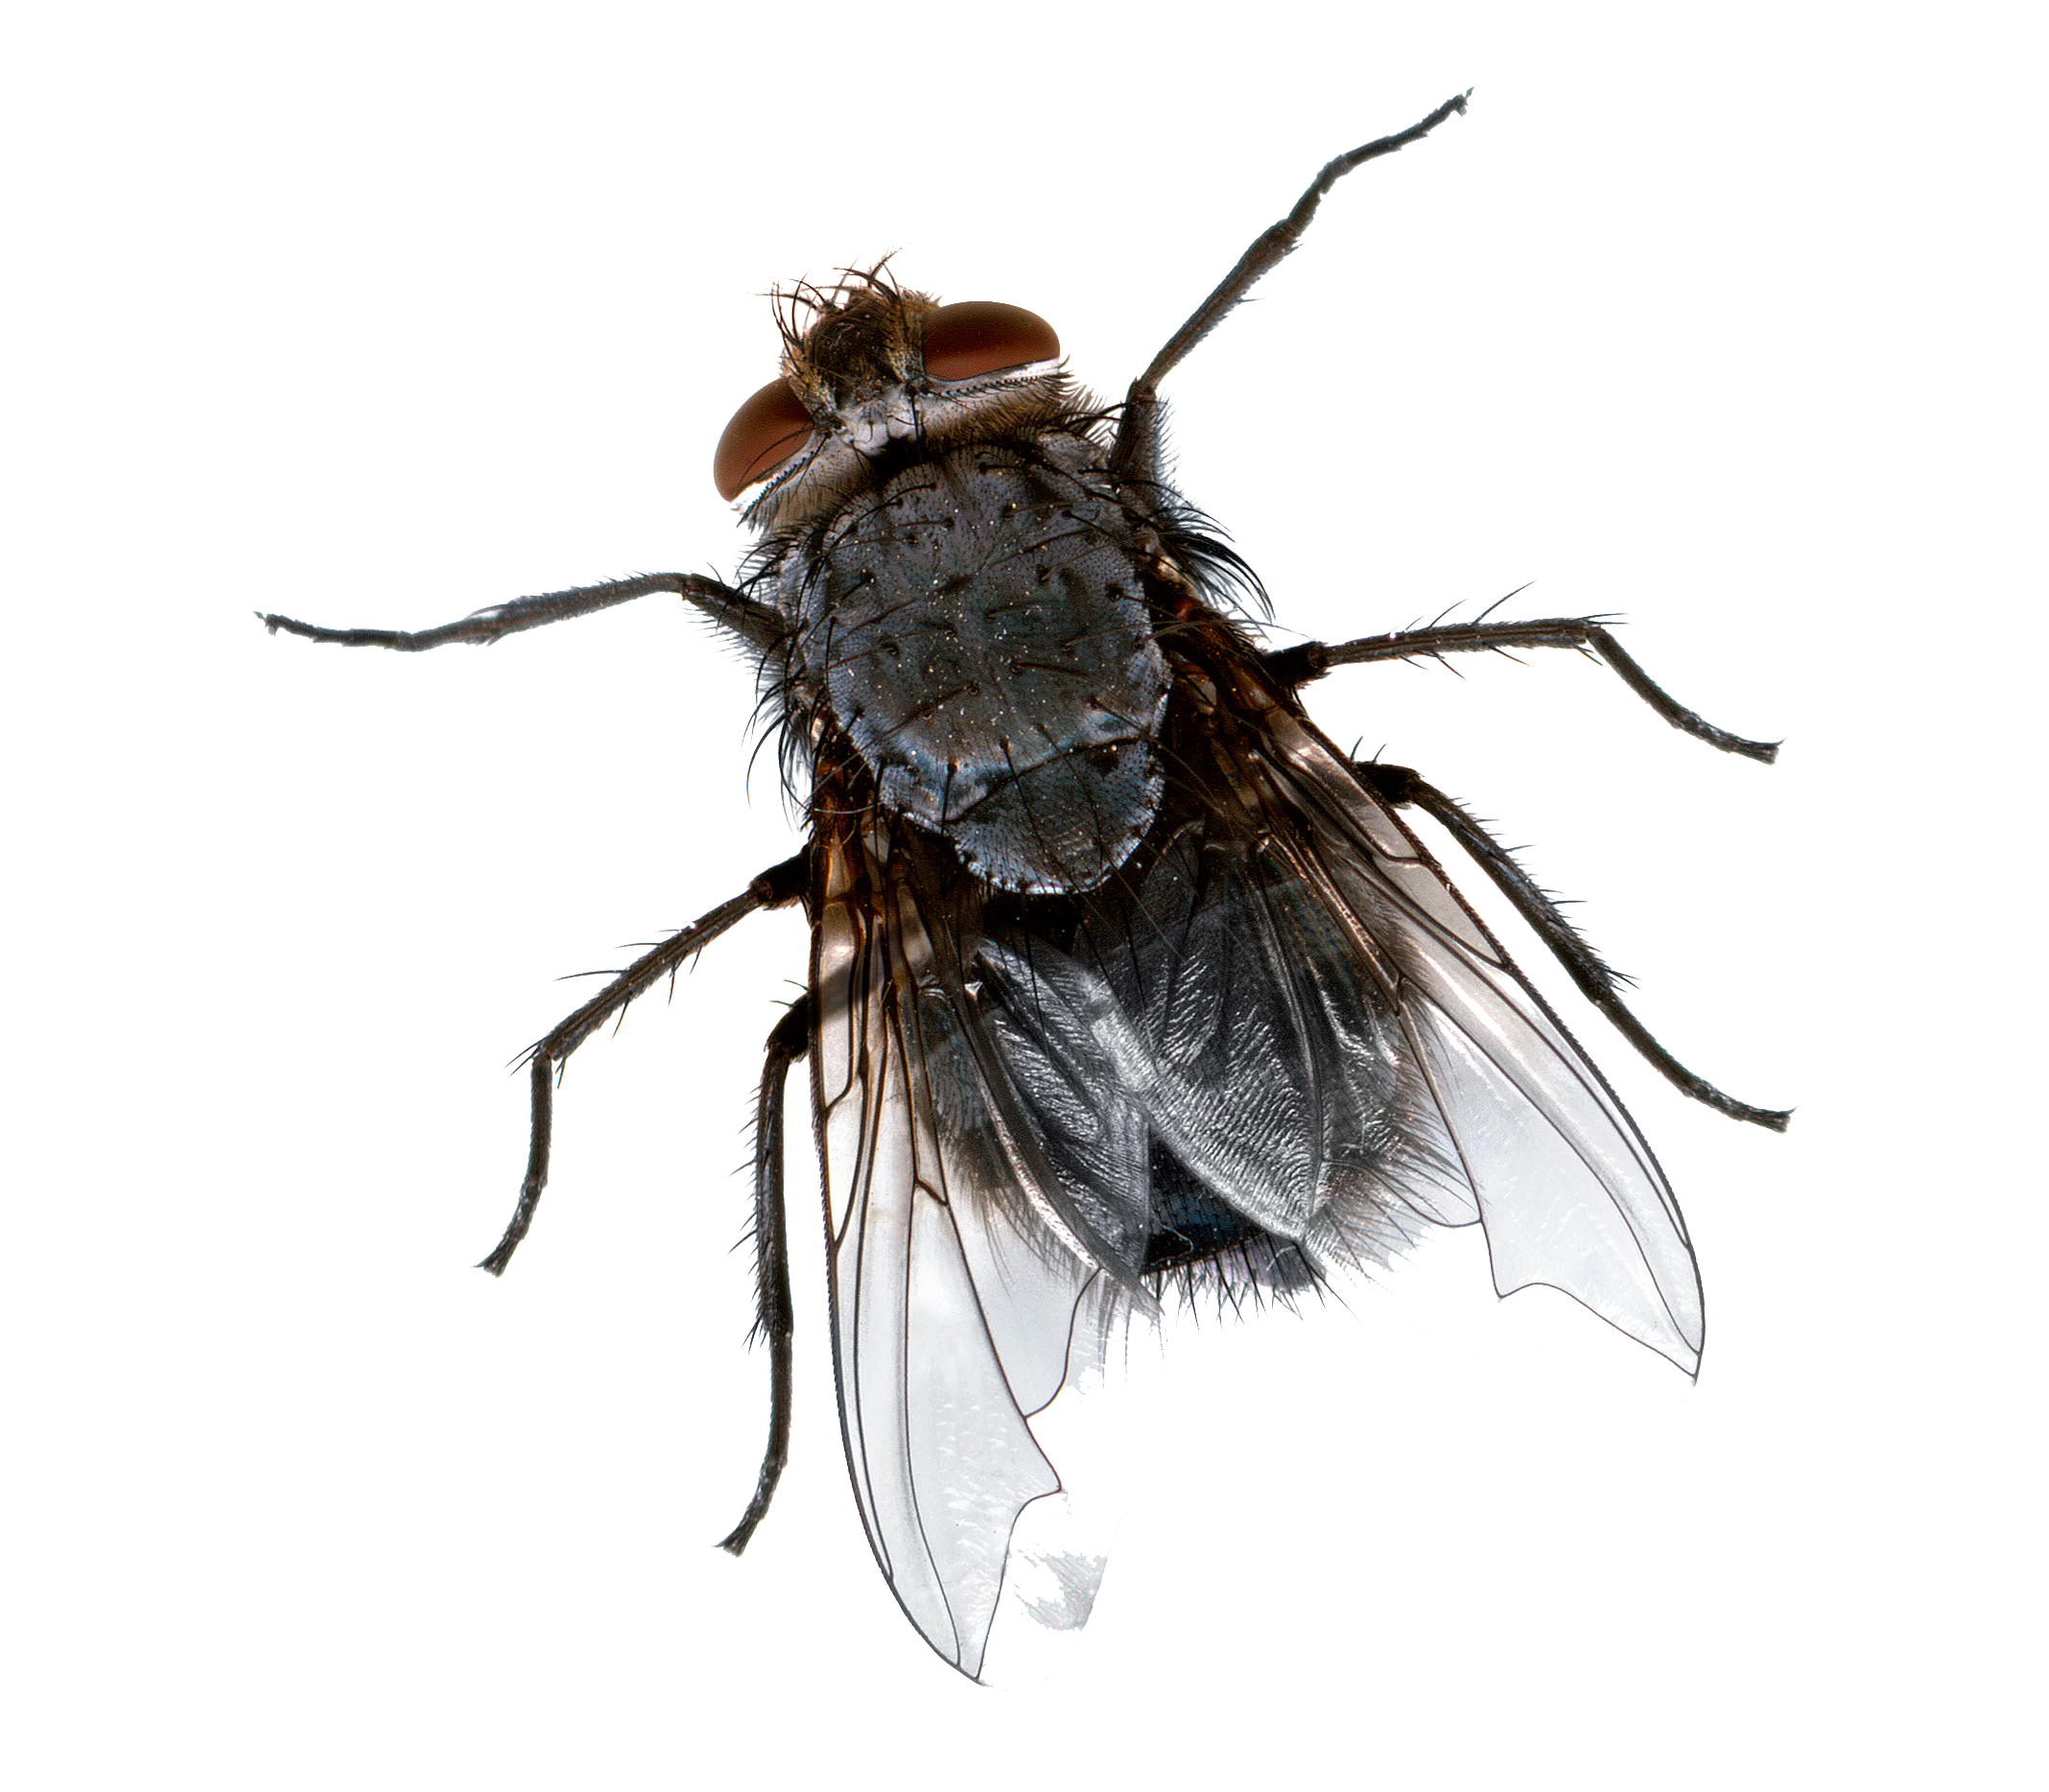 Flies PNG - 22663